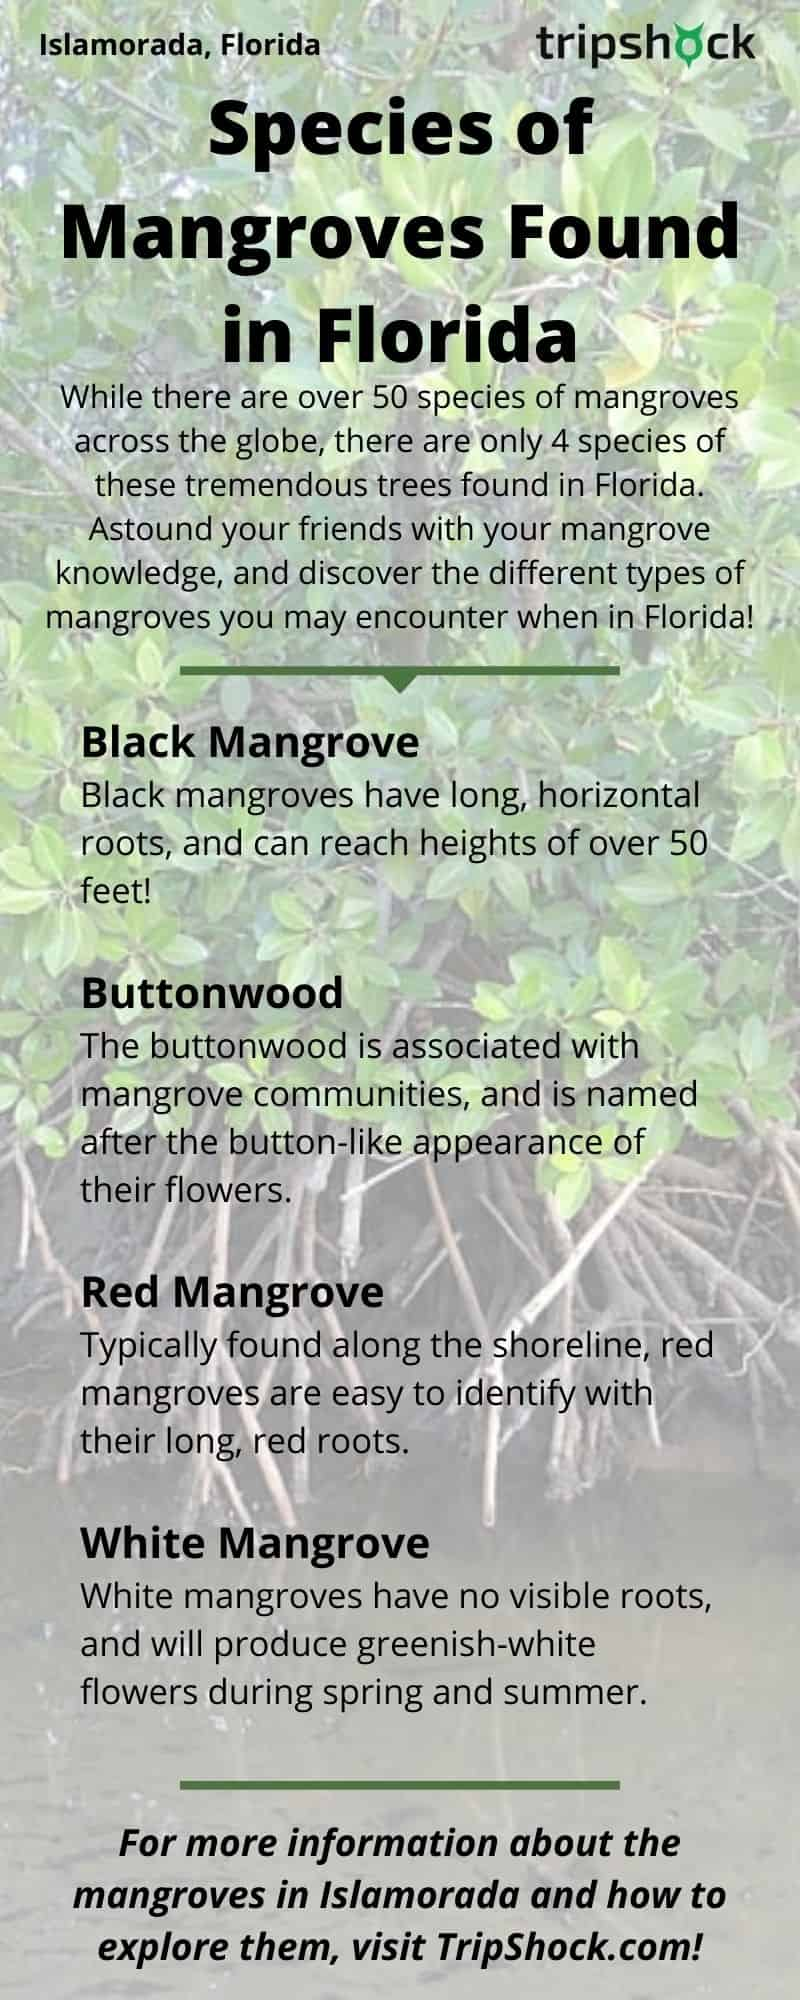 Mangroves of Islamorada, FL - 5 Best Ways to Explore